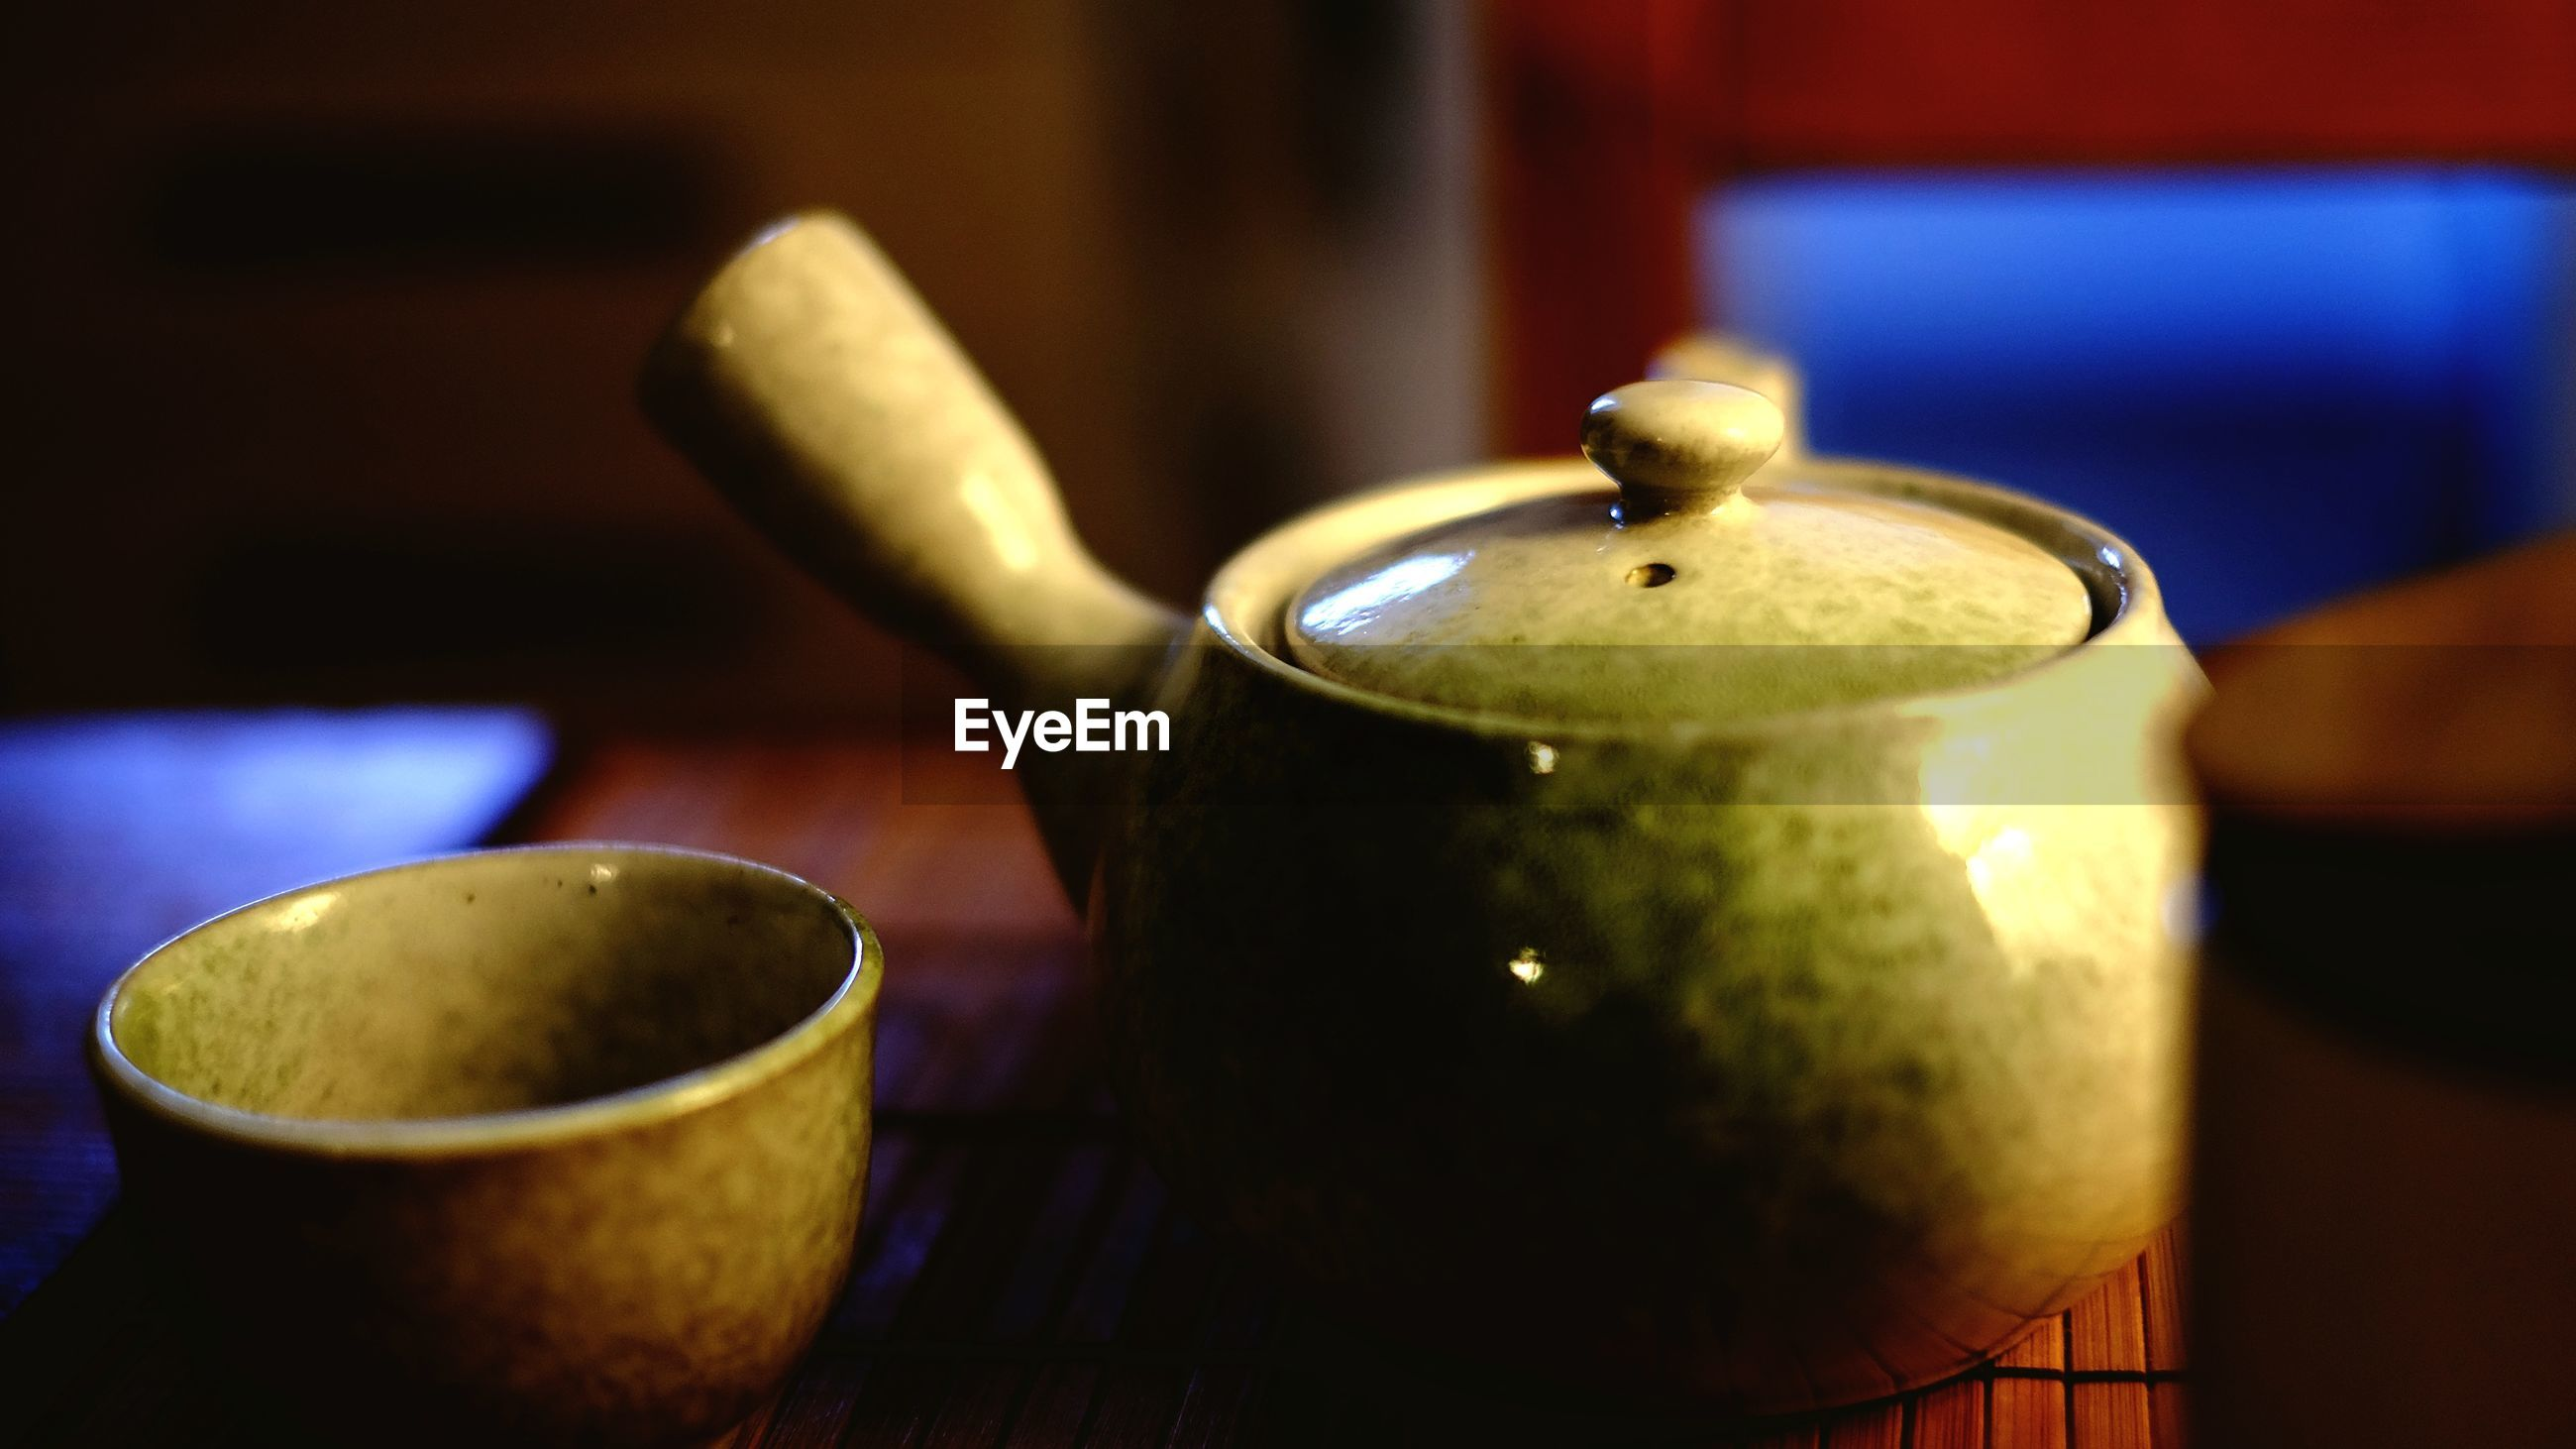 Close-up of teapot and cup on table